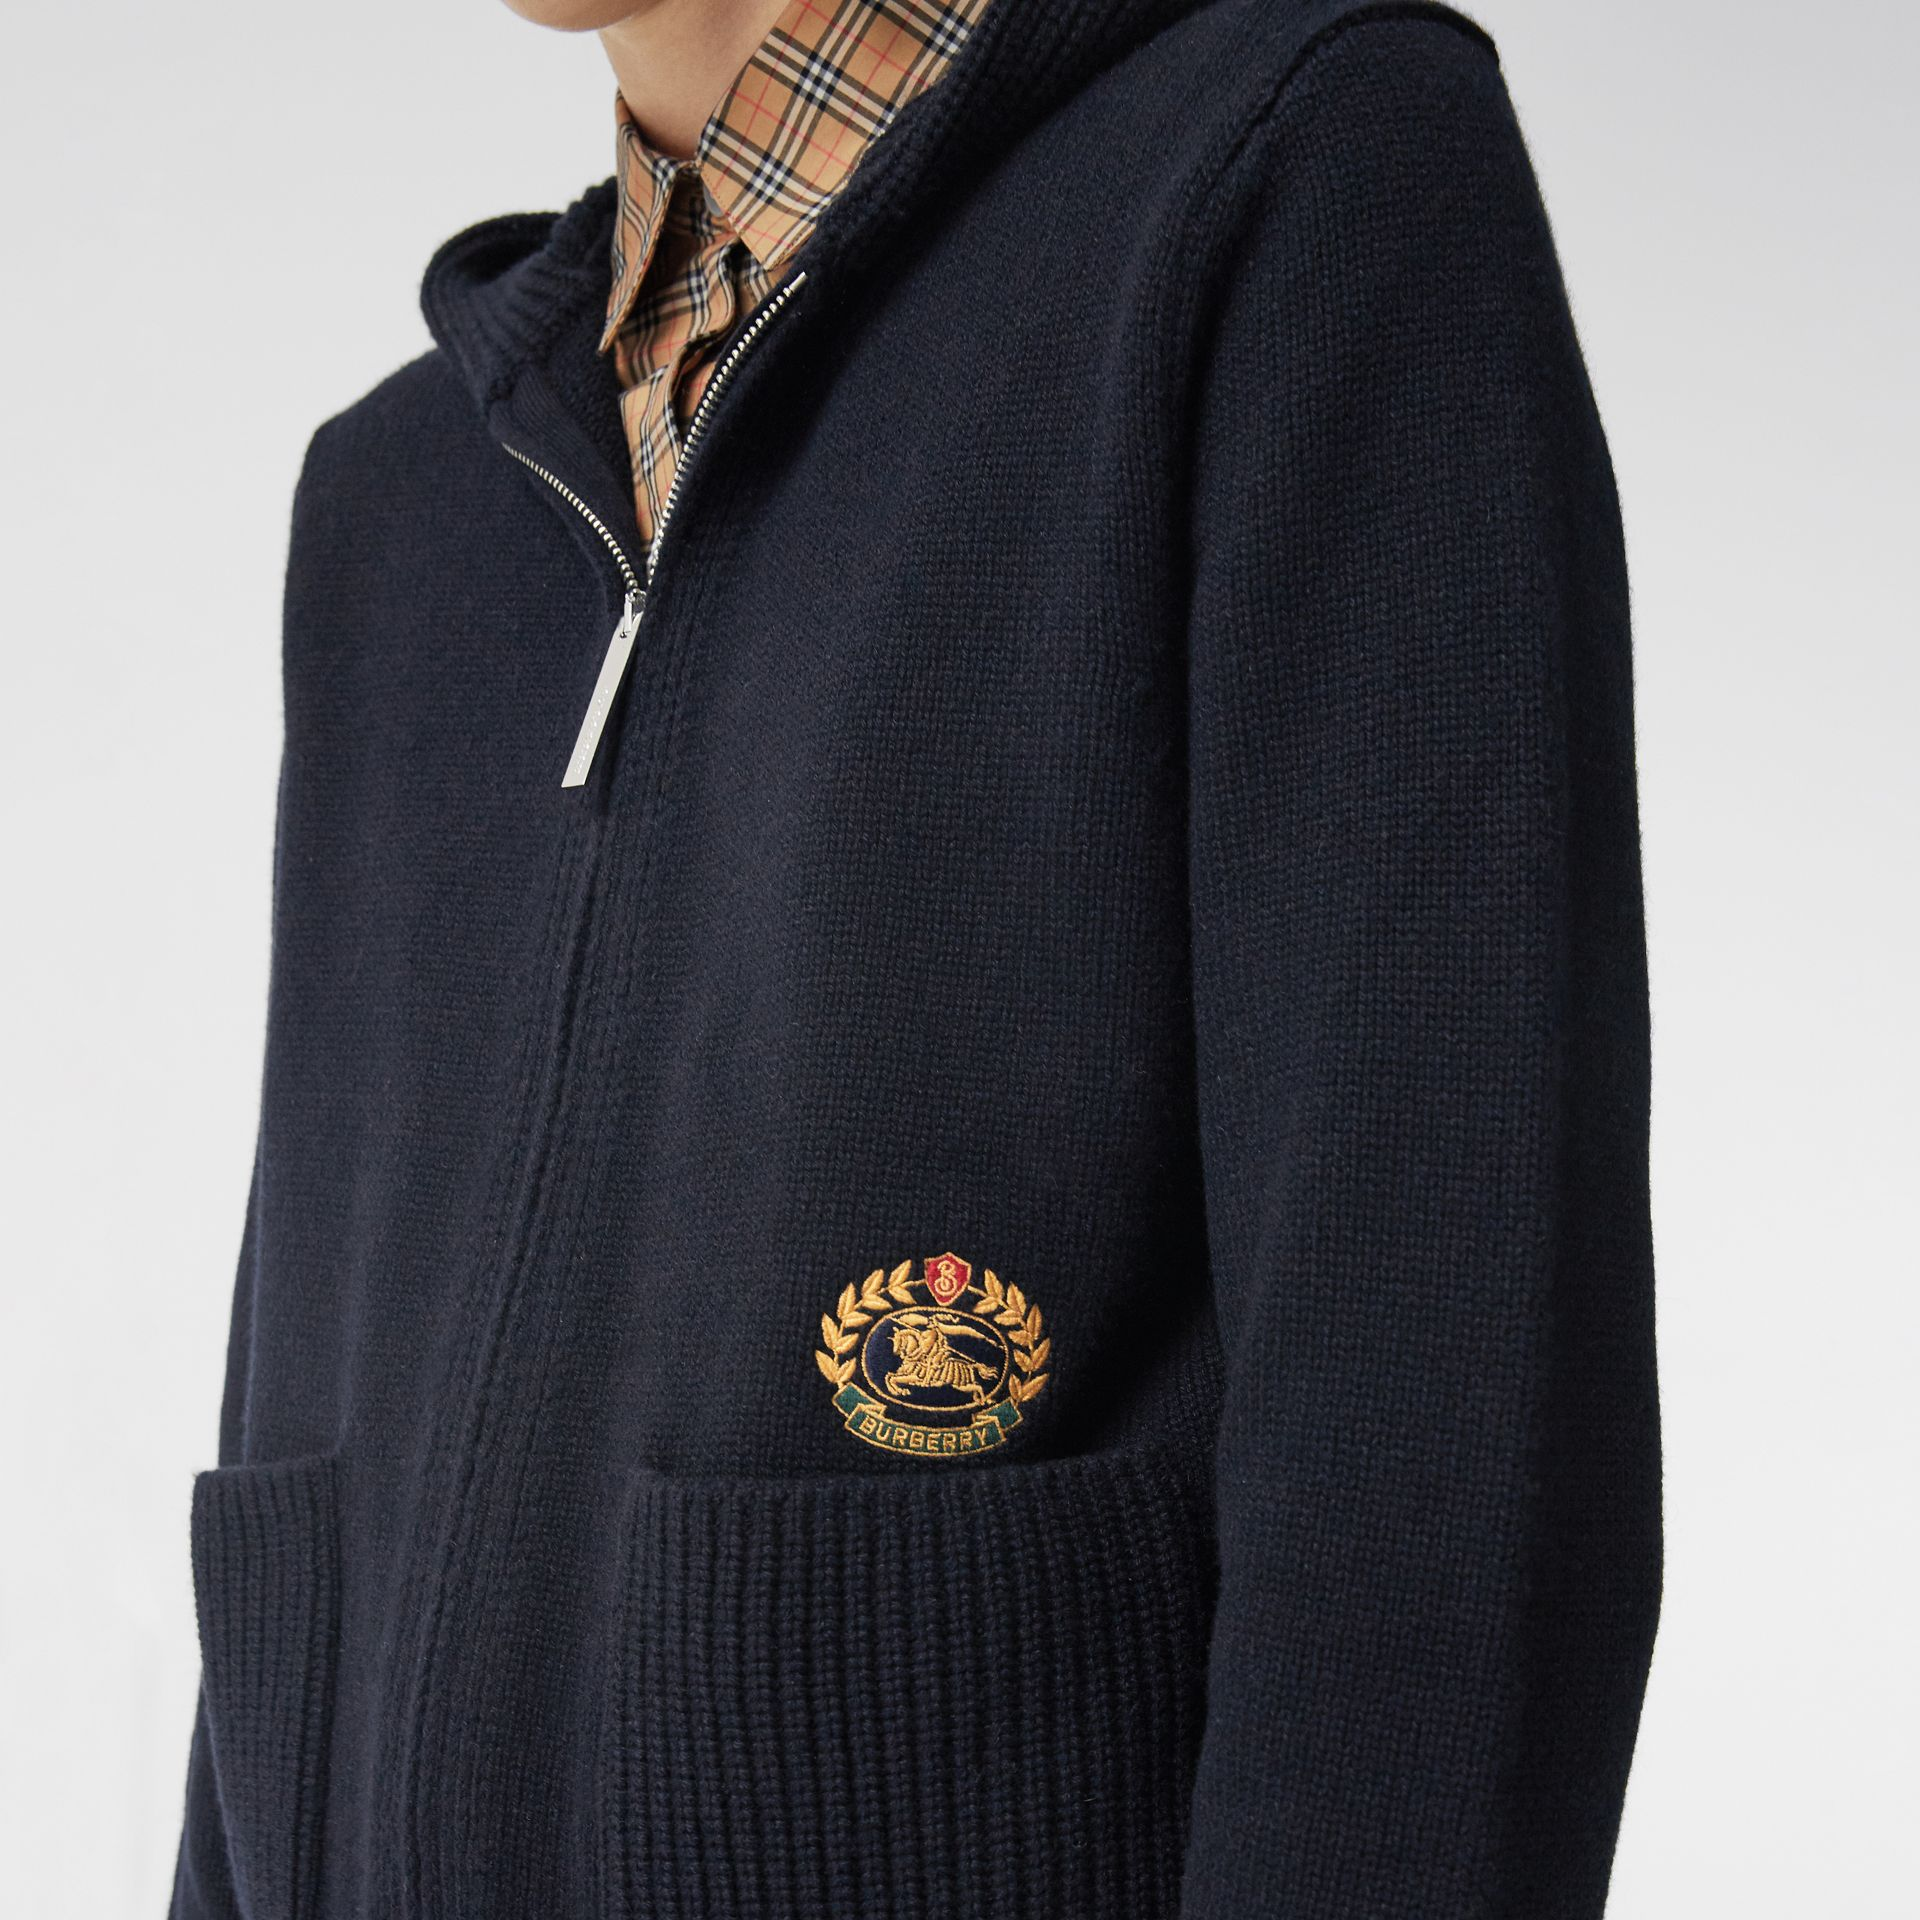 Embroidered Archive Logo Cashmere Hooded Top in Navy - Women | Burberry Singapore - gallery image 1